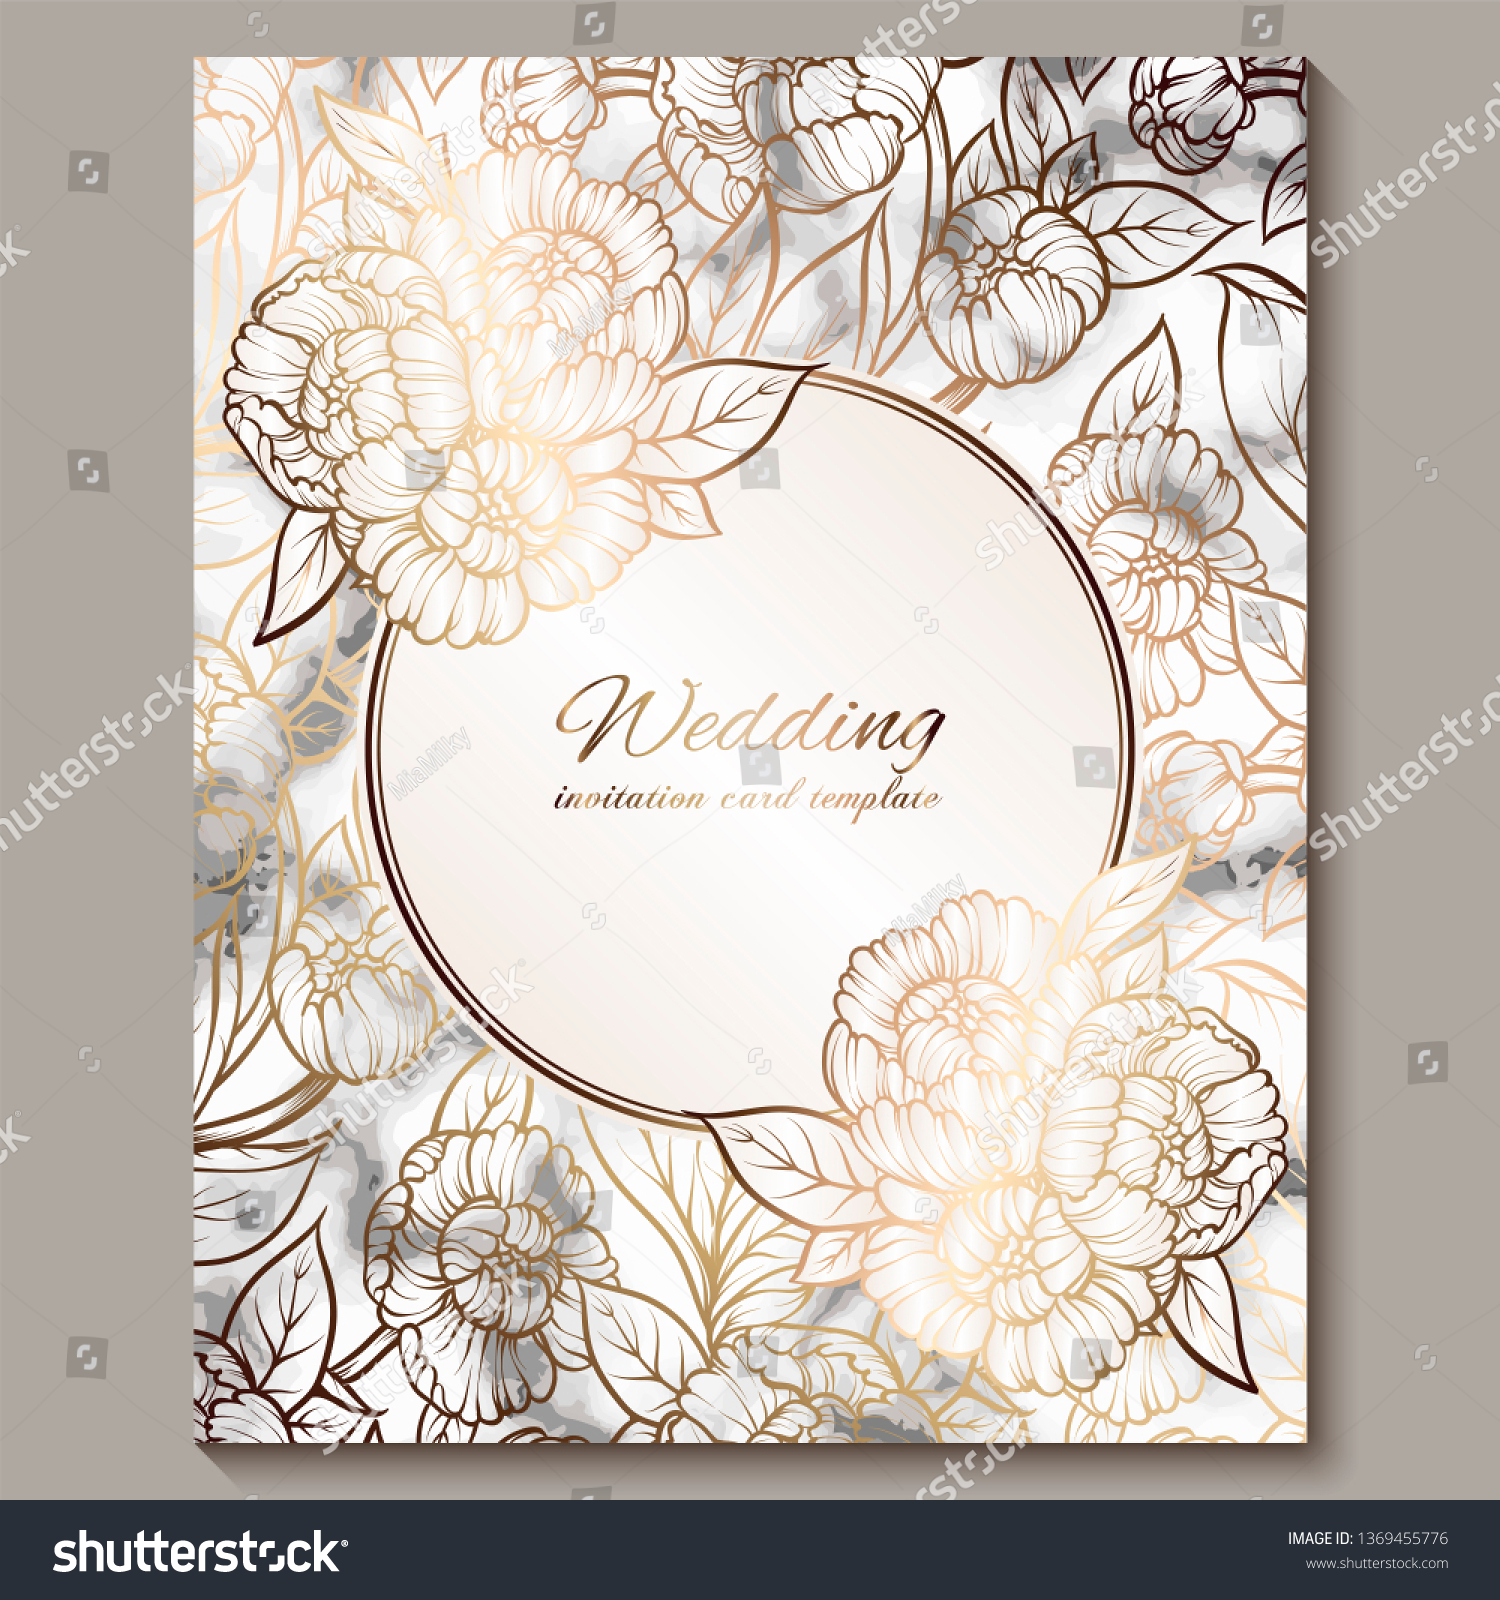 Luxury Elegant Wedding Invitation Cards Marble Stock Vector (Royalty Free)  1369455776